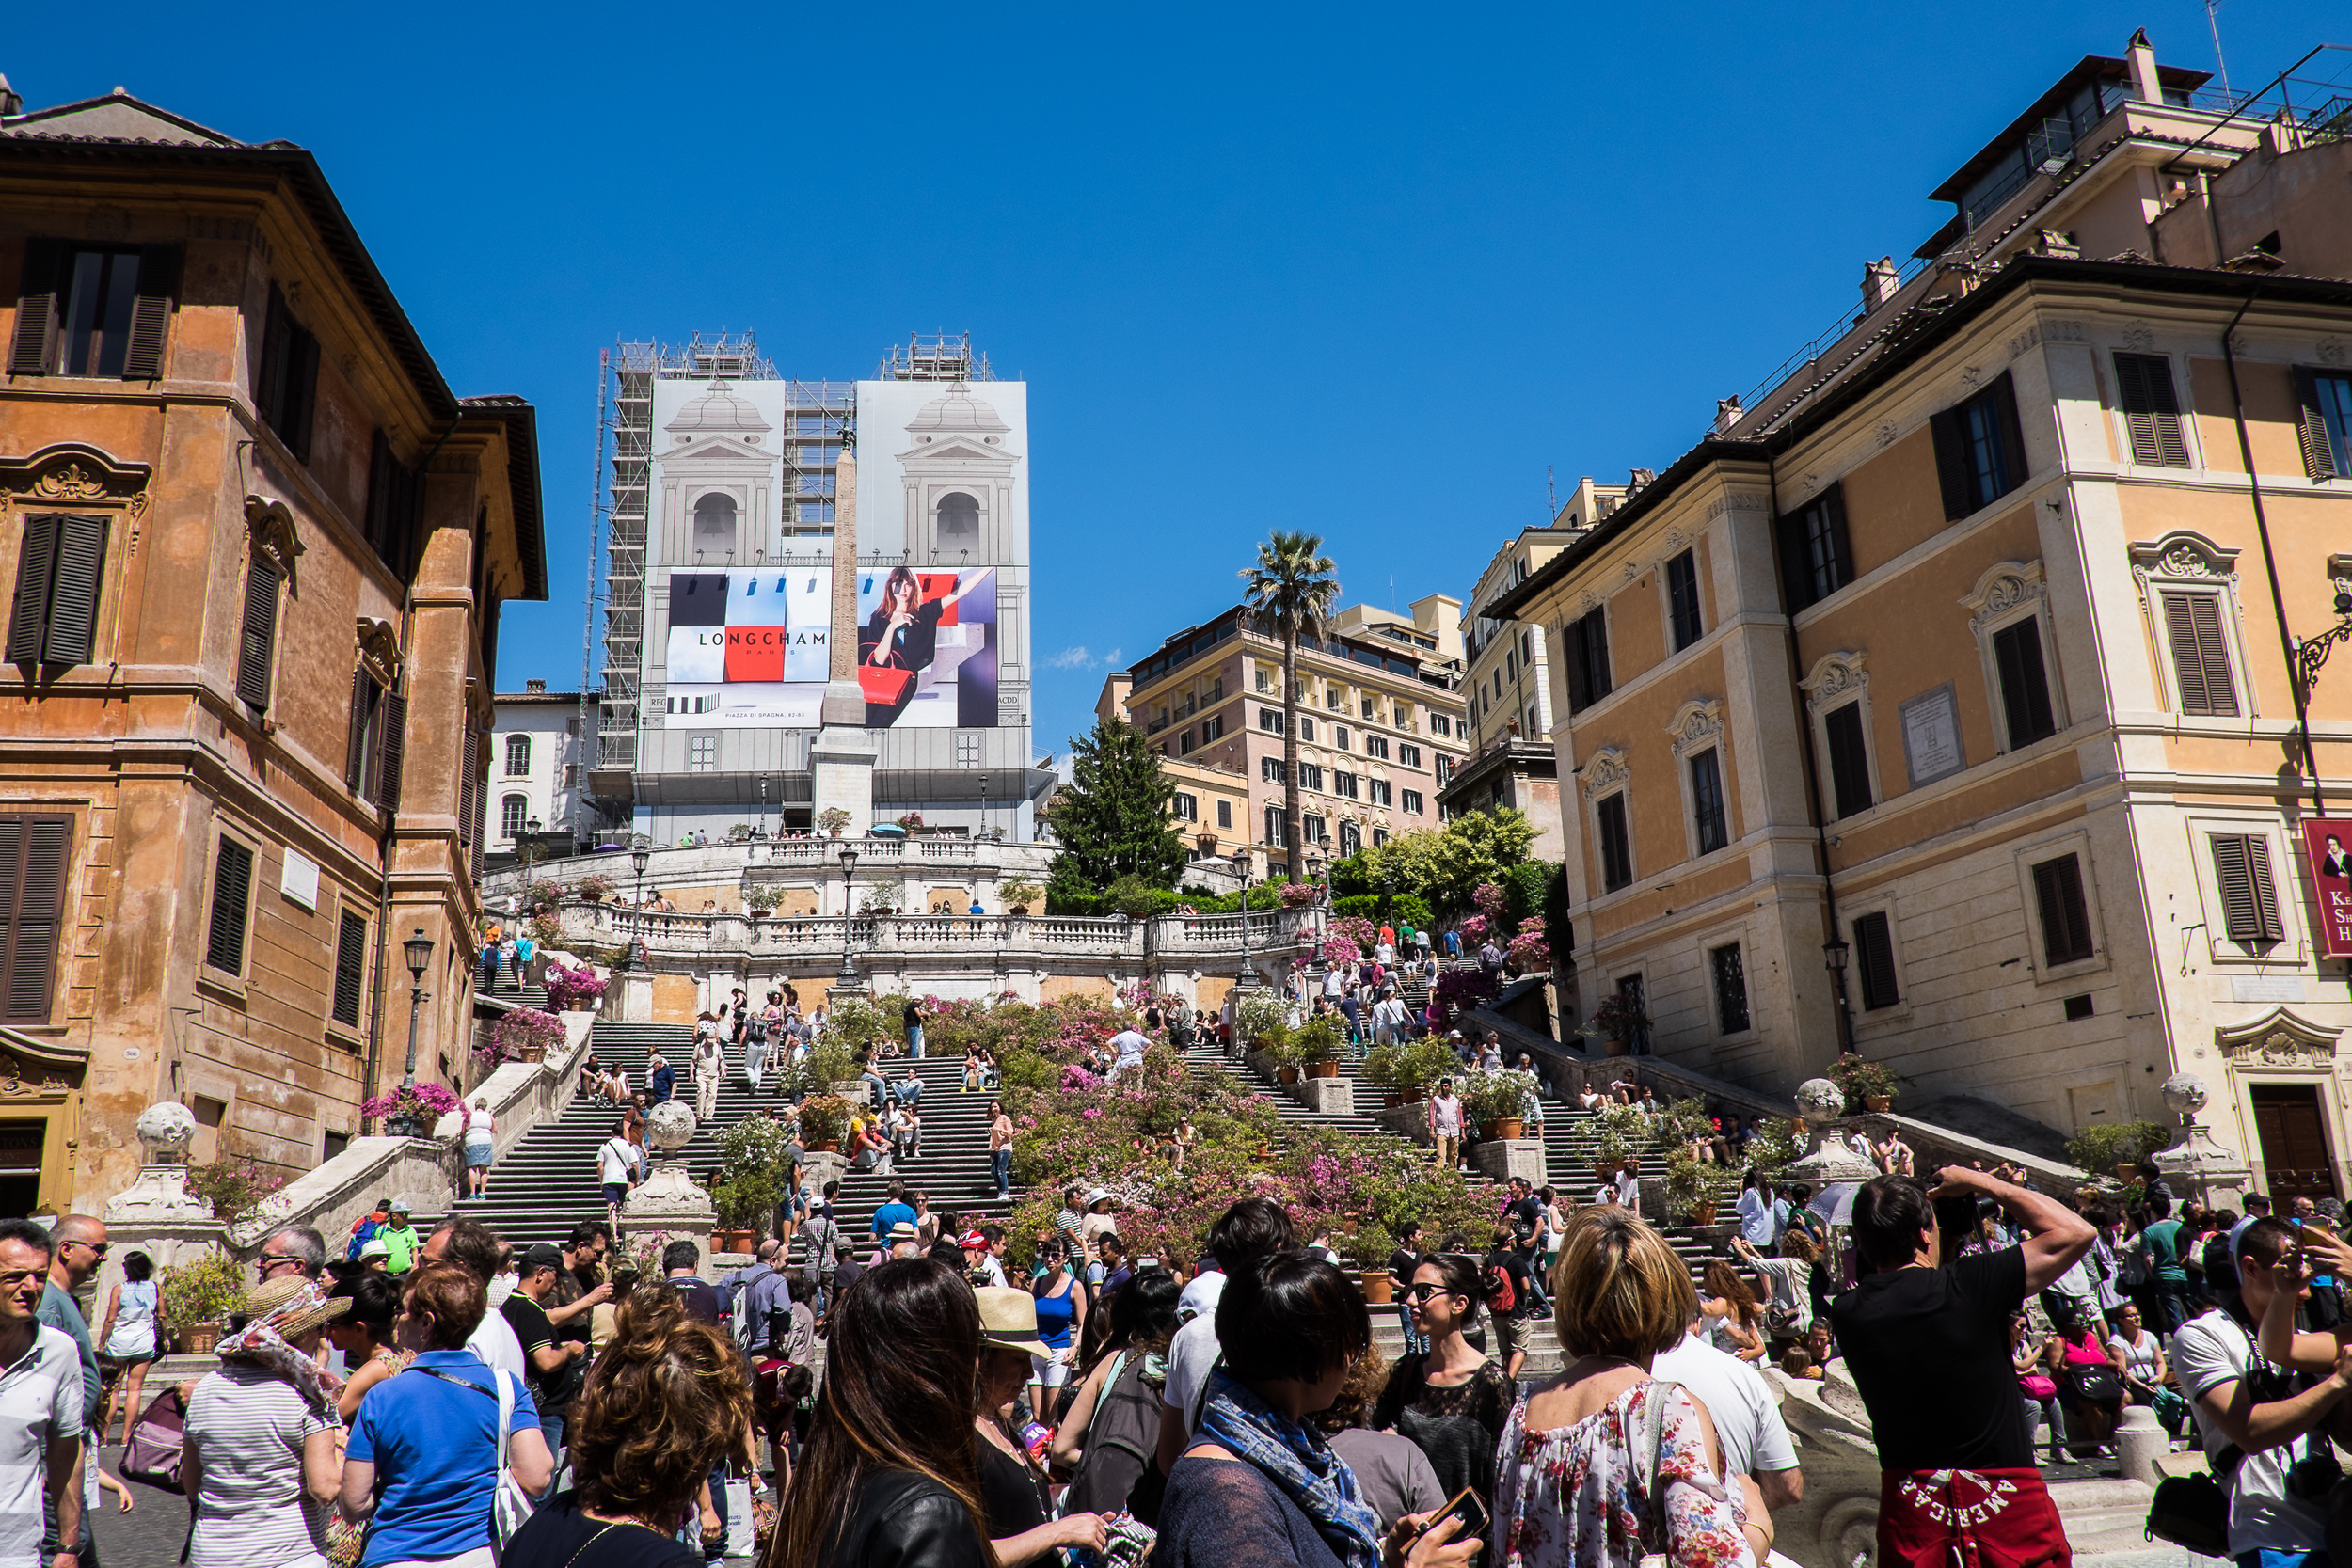 Piazza di Spagna, the Spanish Steps, with one or two of our friends.